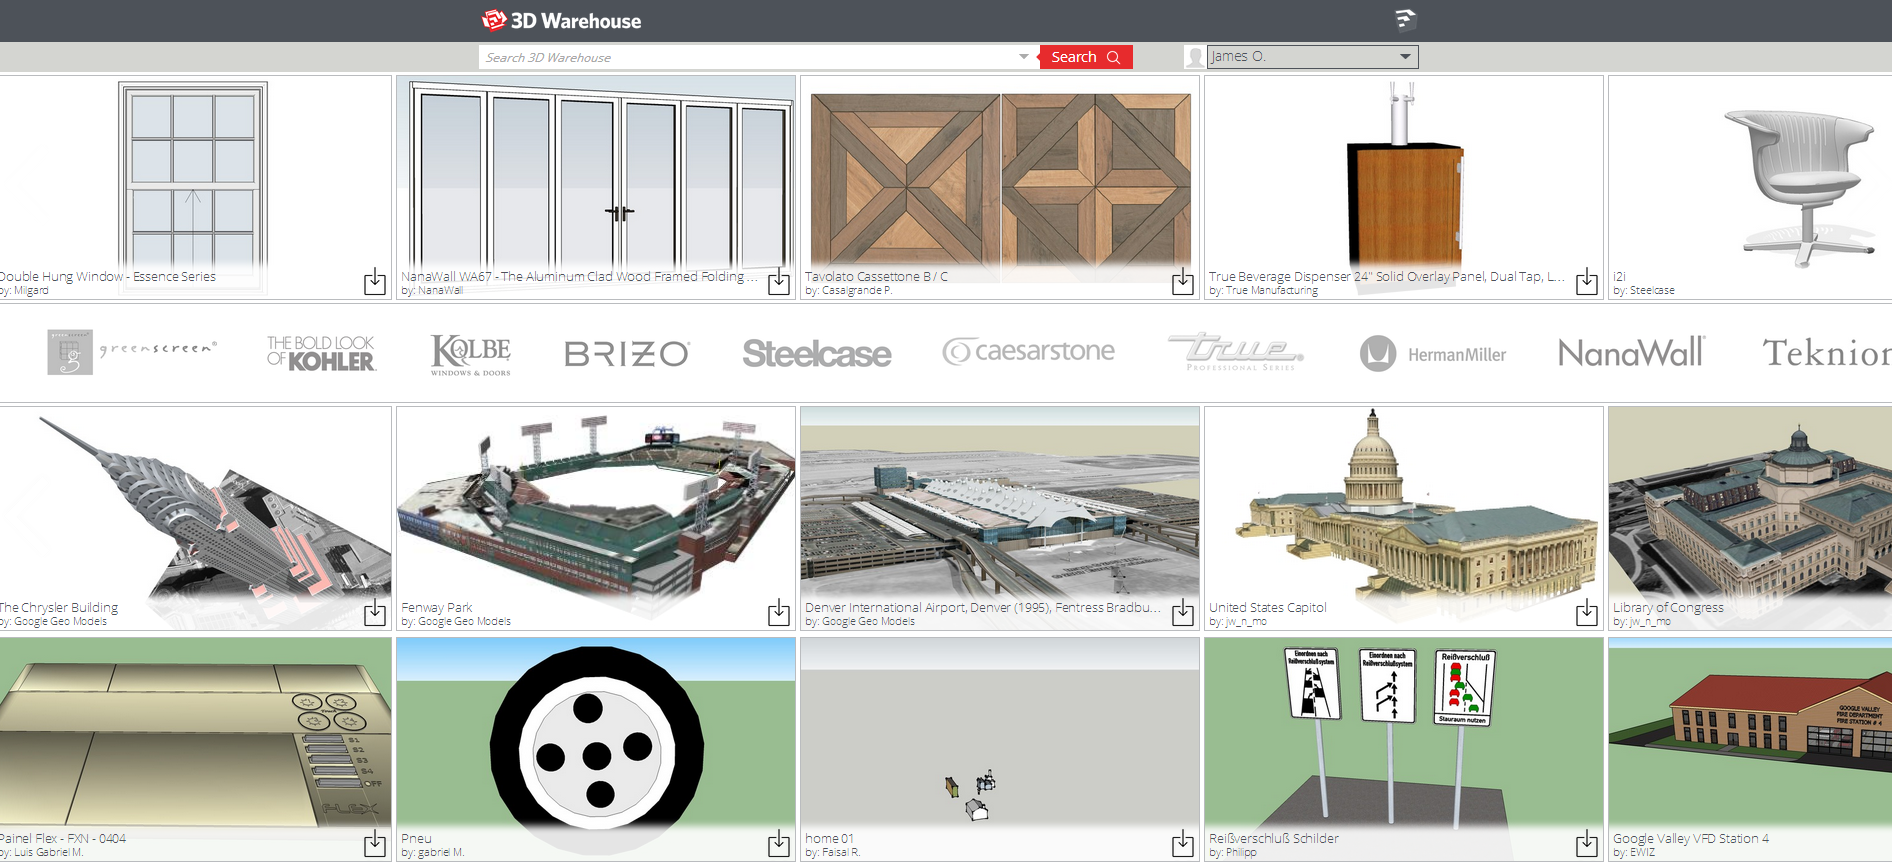 3D Warehouse